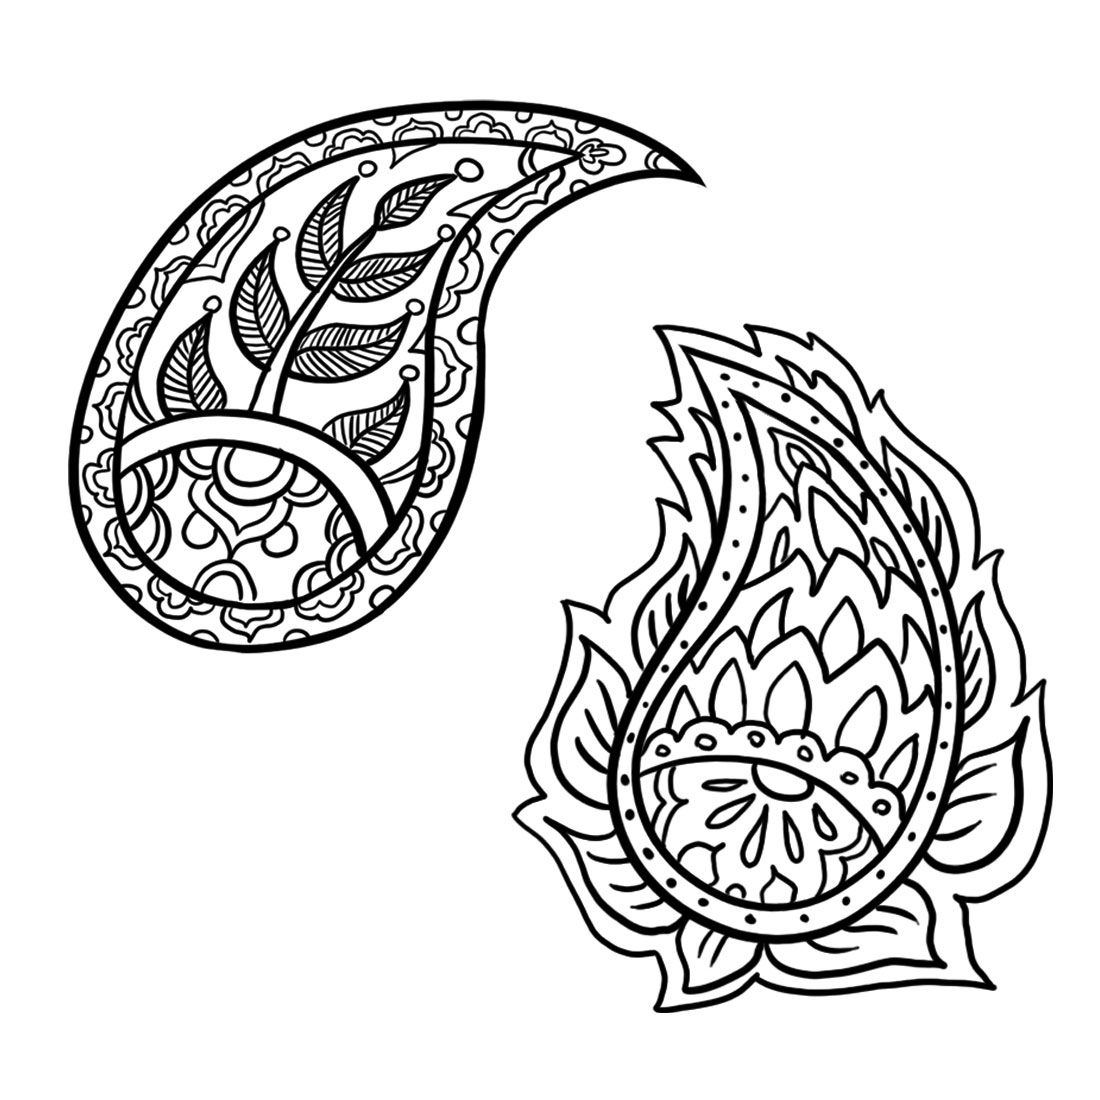 Paisley design paisley pattern mandala coloring pages for Drawing patterns for beginners